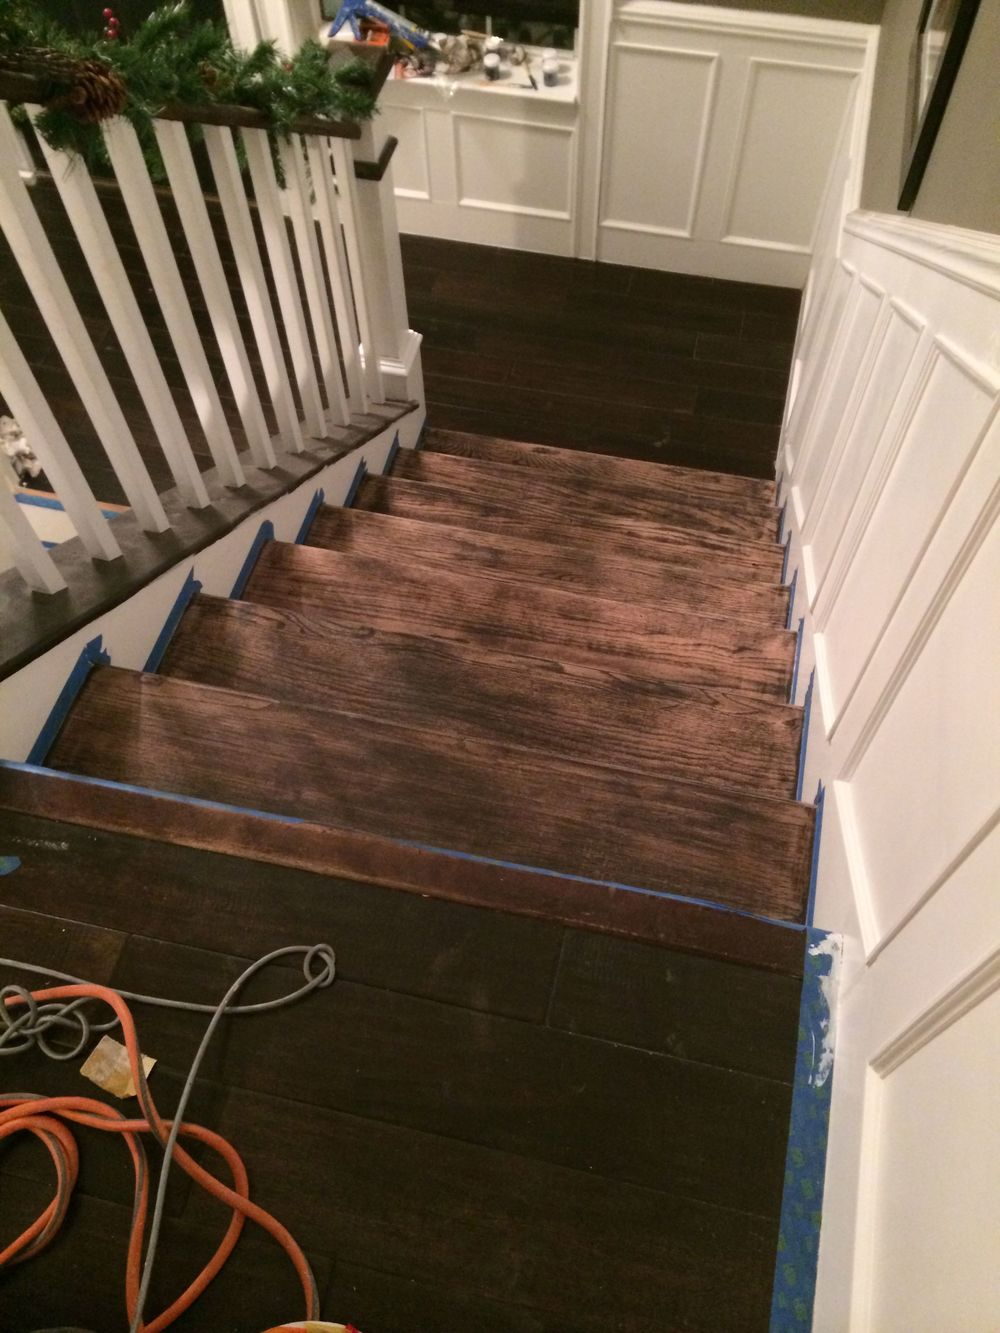 Step 11: Refinish the stairs (again) after the bathroom remodel destroyed them.